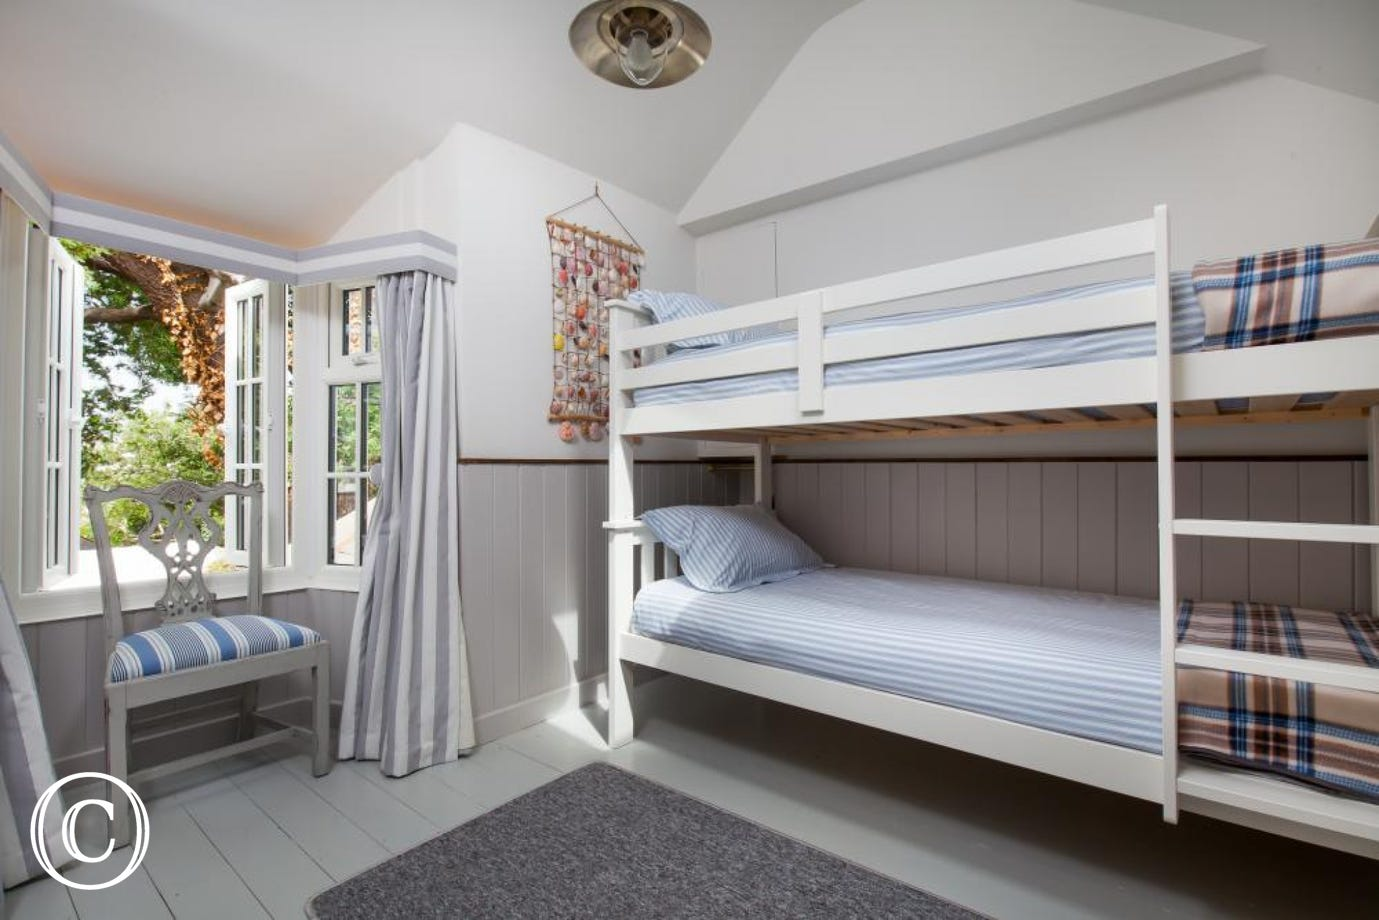 3rd bunk bed room (suitable for adults) with estuary views from the right window furnished with drawers & a TV